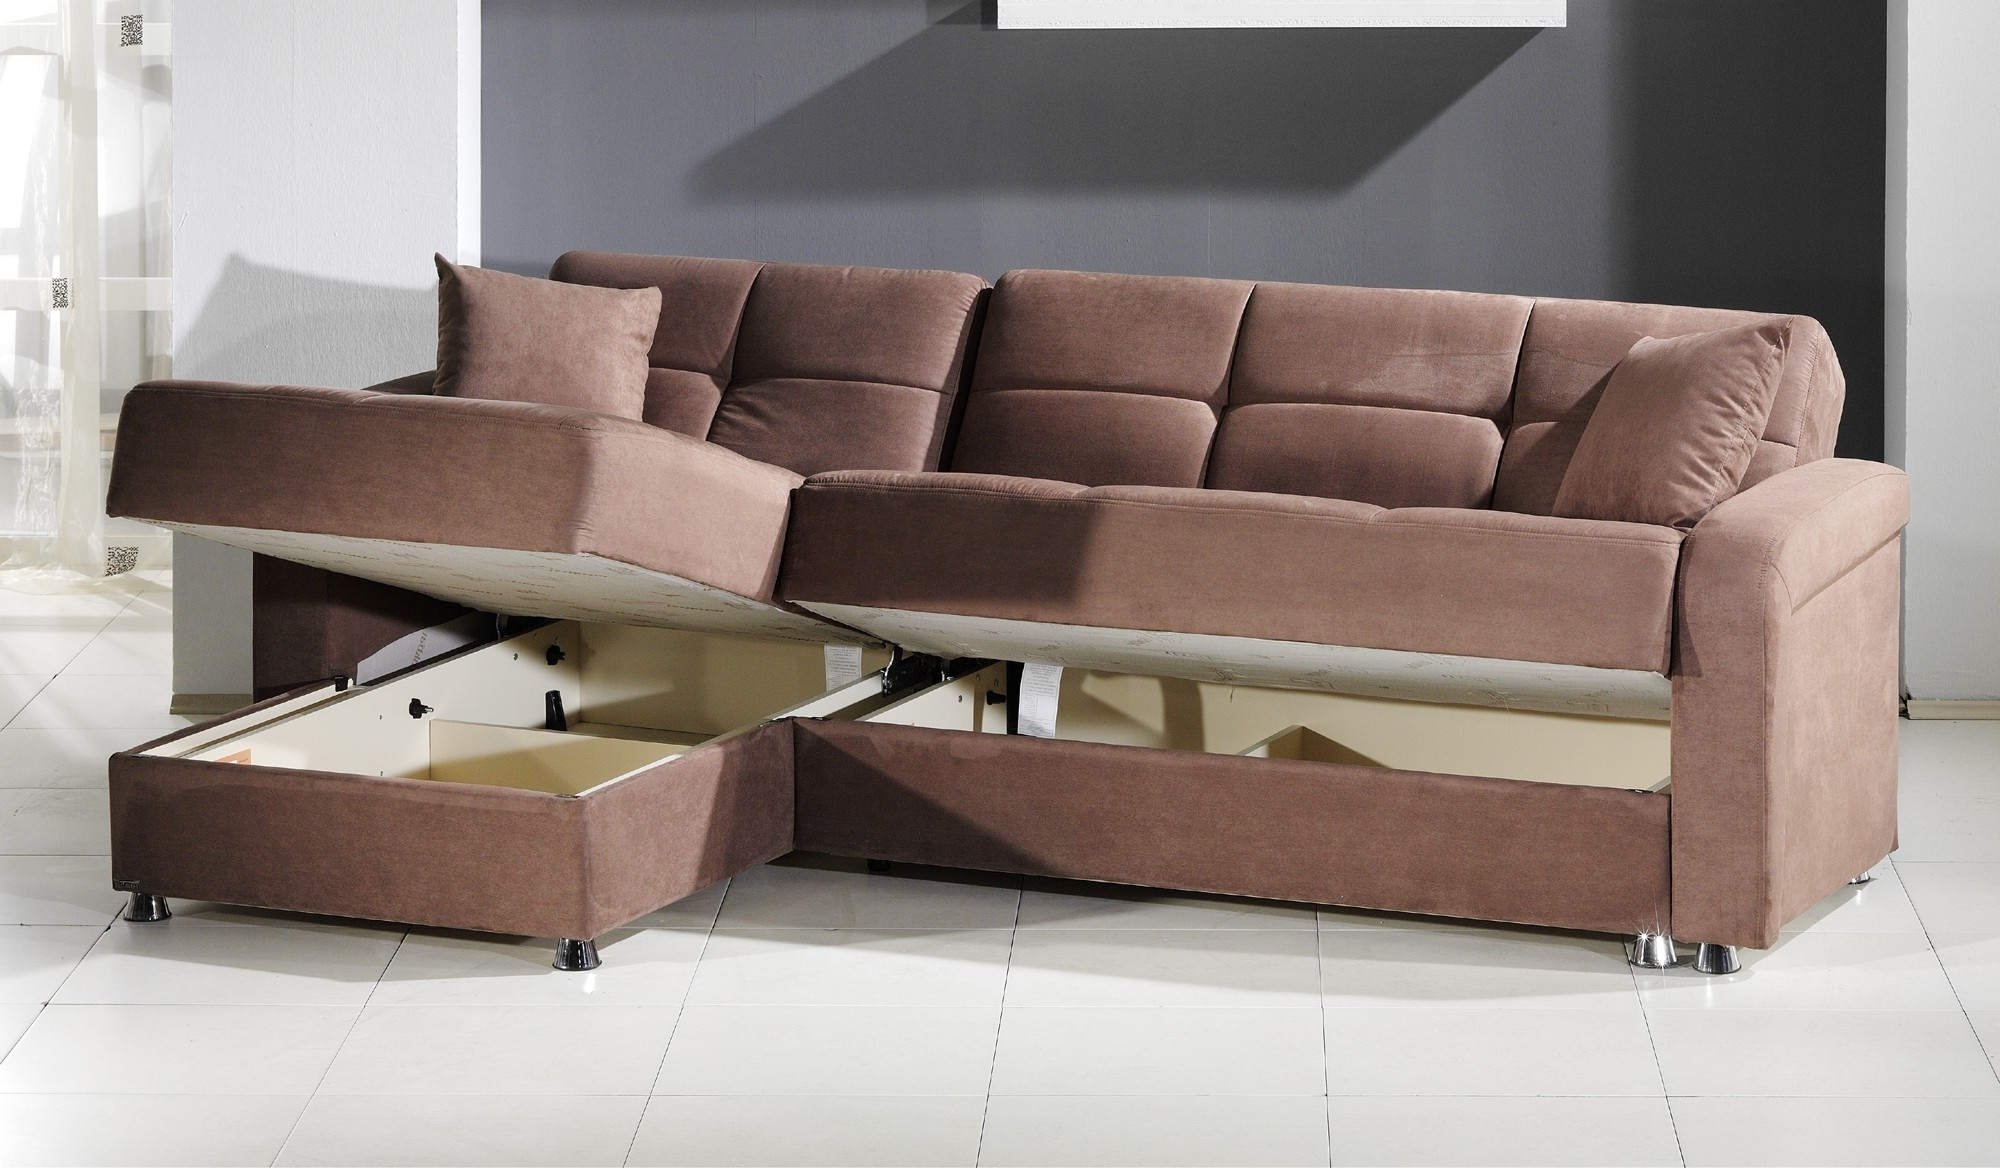 Convertible Sectional Sofas In Widely Used Vision Convertible Sectional Sofa In Rainbow Truffleistikbal (View 5 of 15)